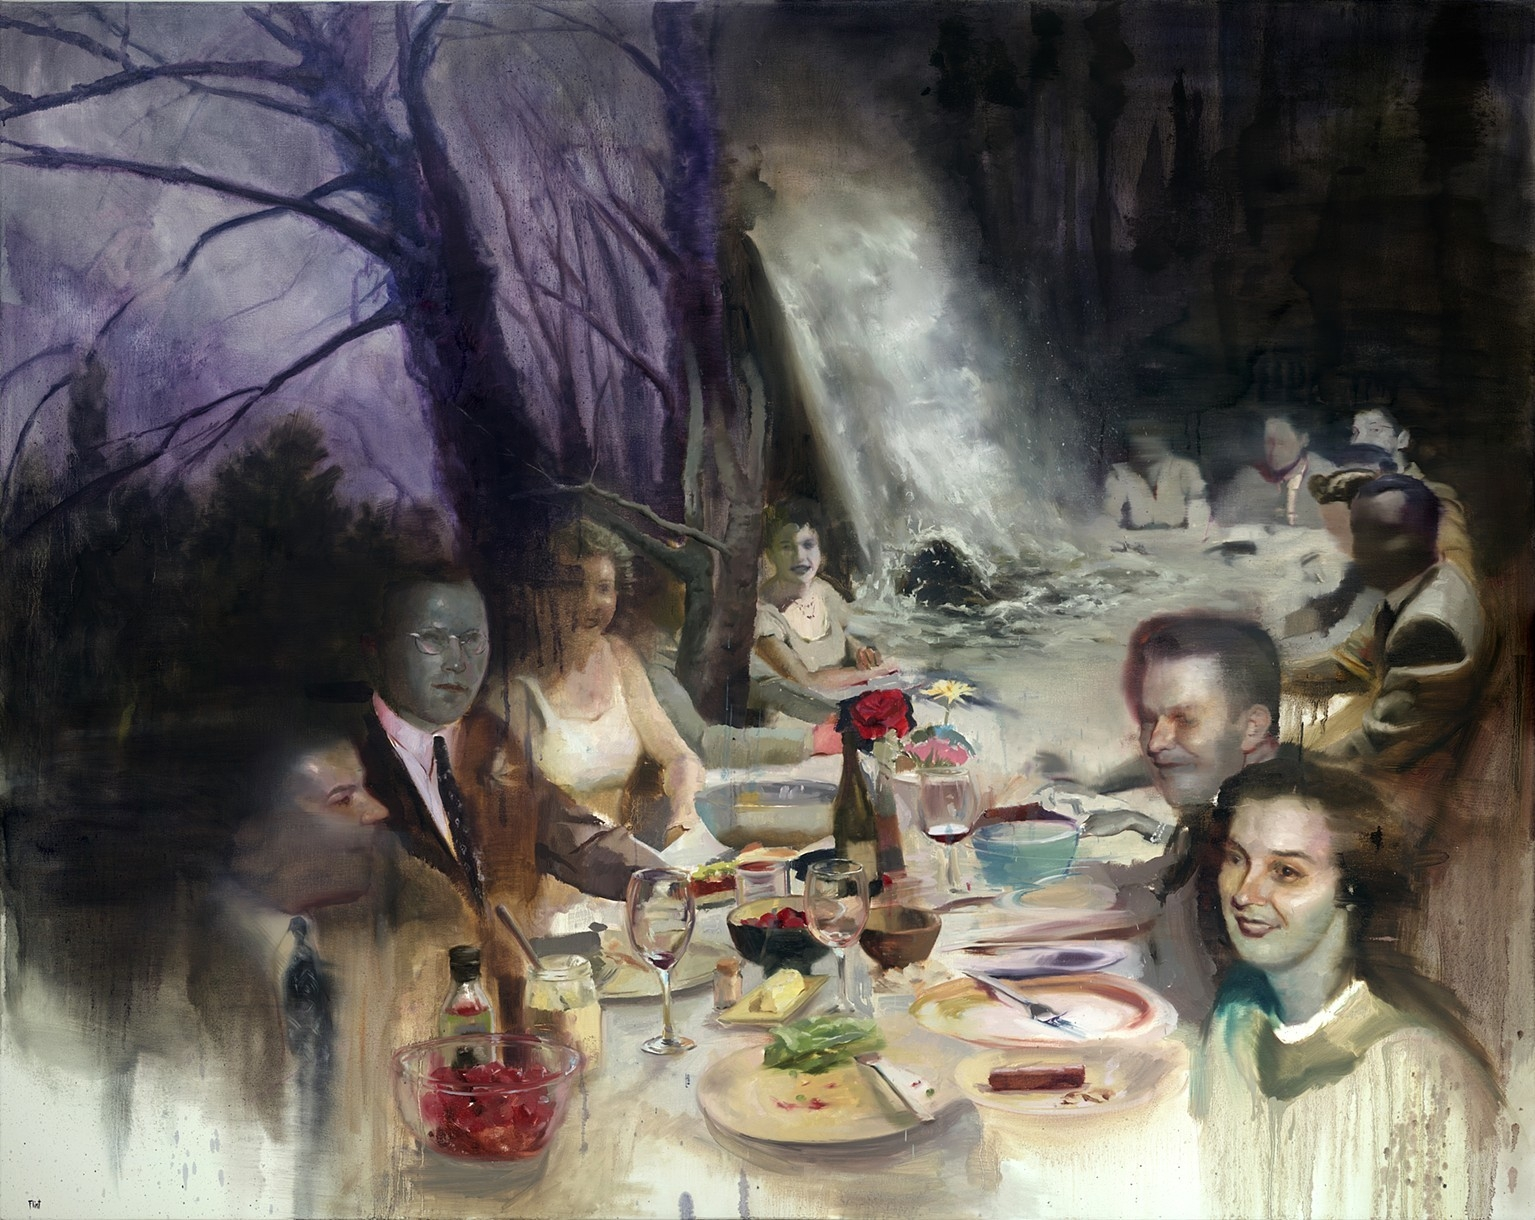 04-The-Banquet-Joshua-Flint-Surreal-Collage-of-References-in-Oil-Paintings-www-designstack-co